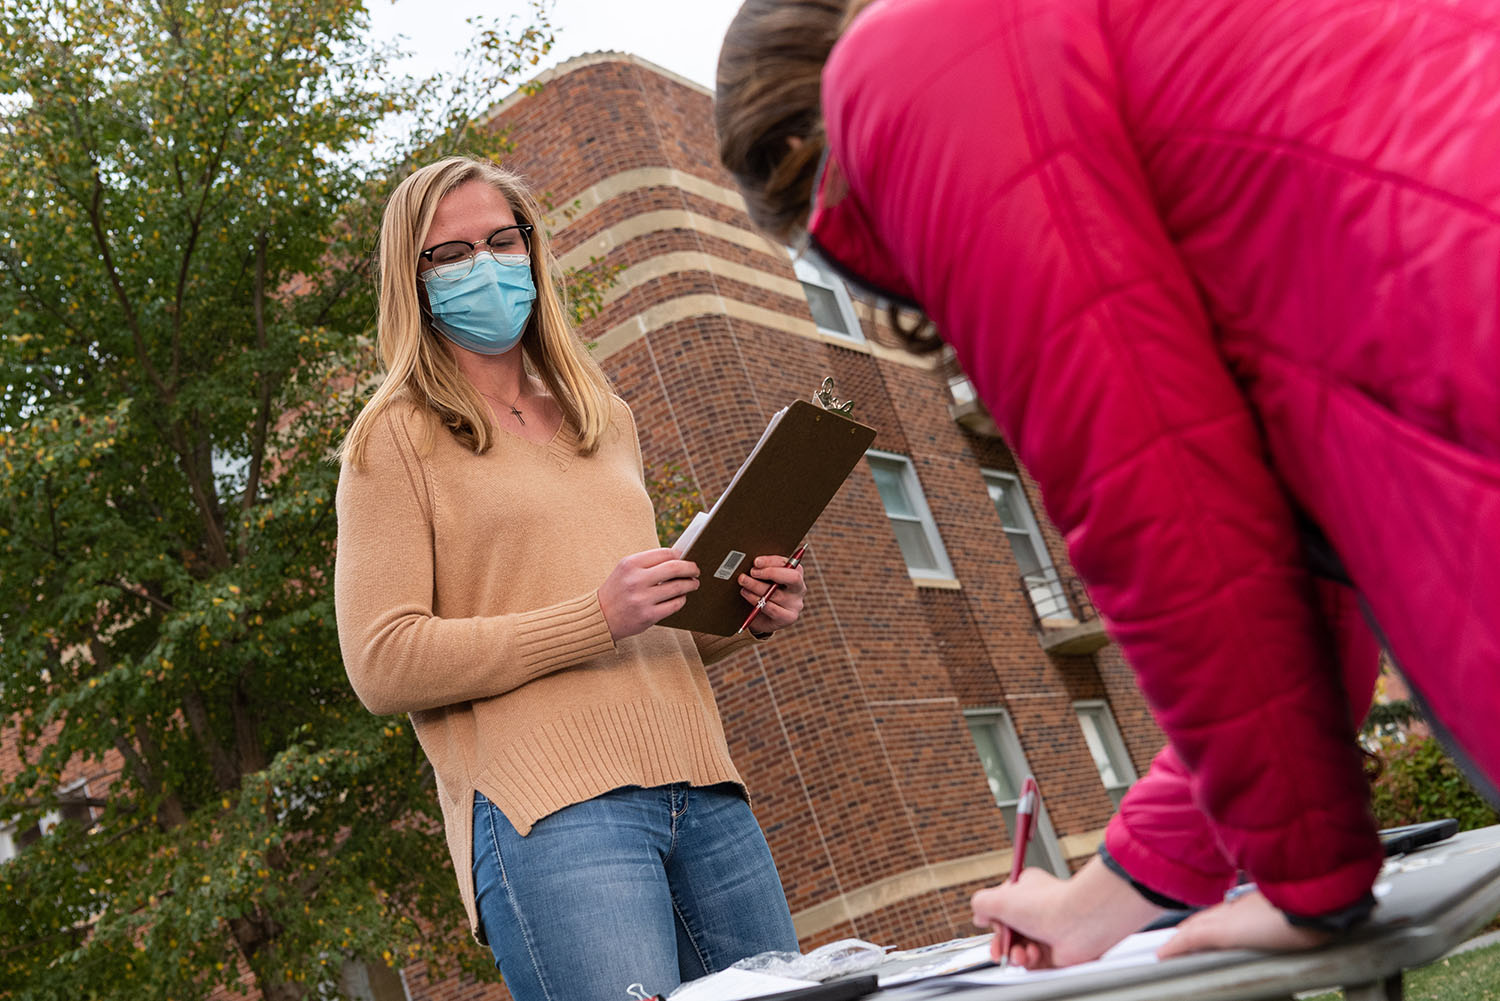 UNK junior Lydia Behnk of Elgin runs an informational table on campus where fellow students could register to vote or request an absentee ballot. (Photos by Kosuke Yoshii, UNK Communications)